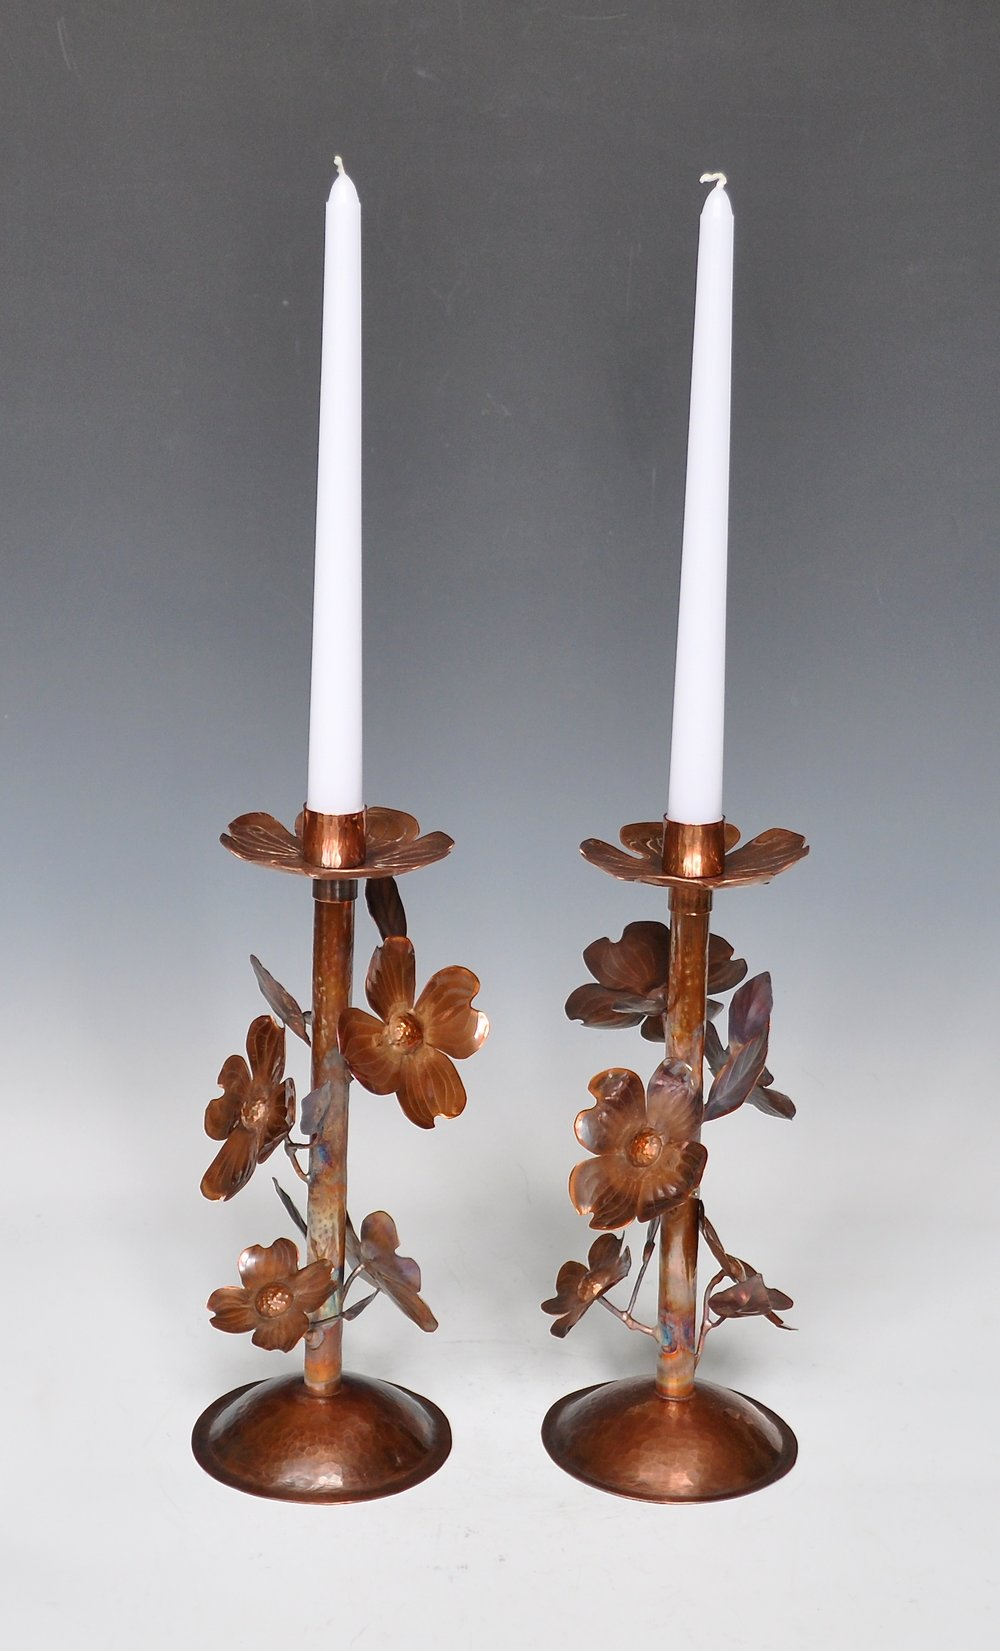 Dogwood Candlesticks